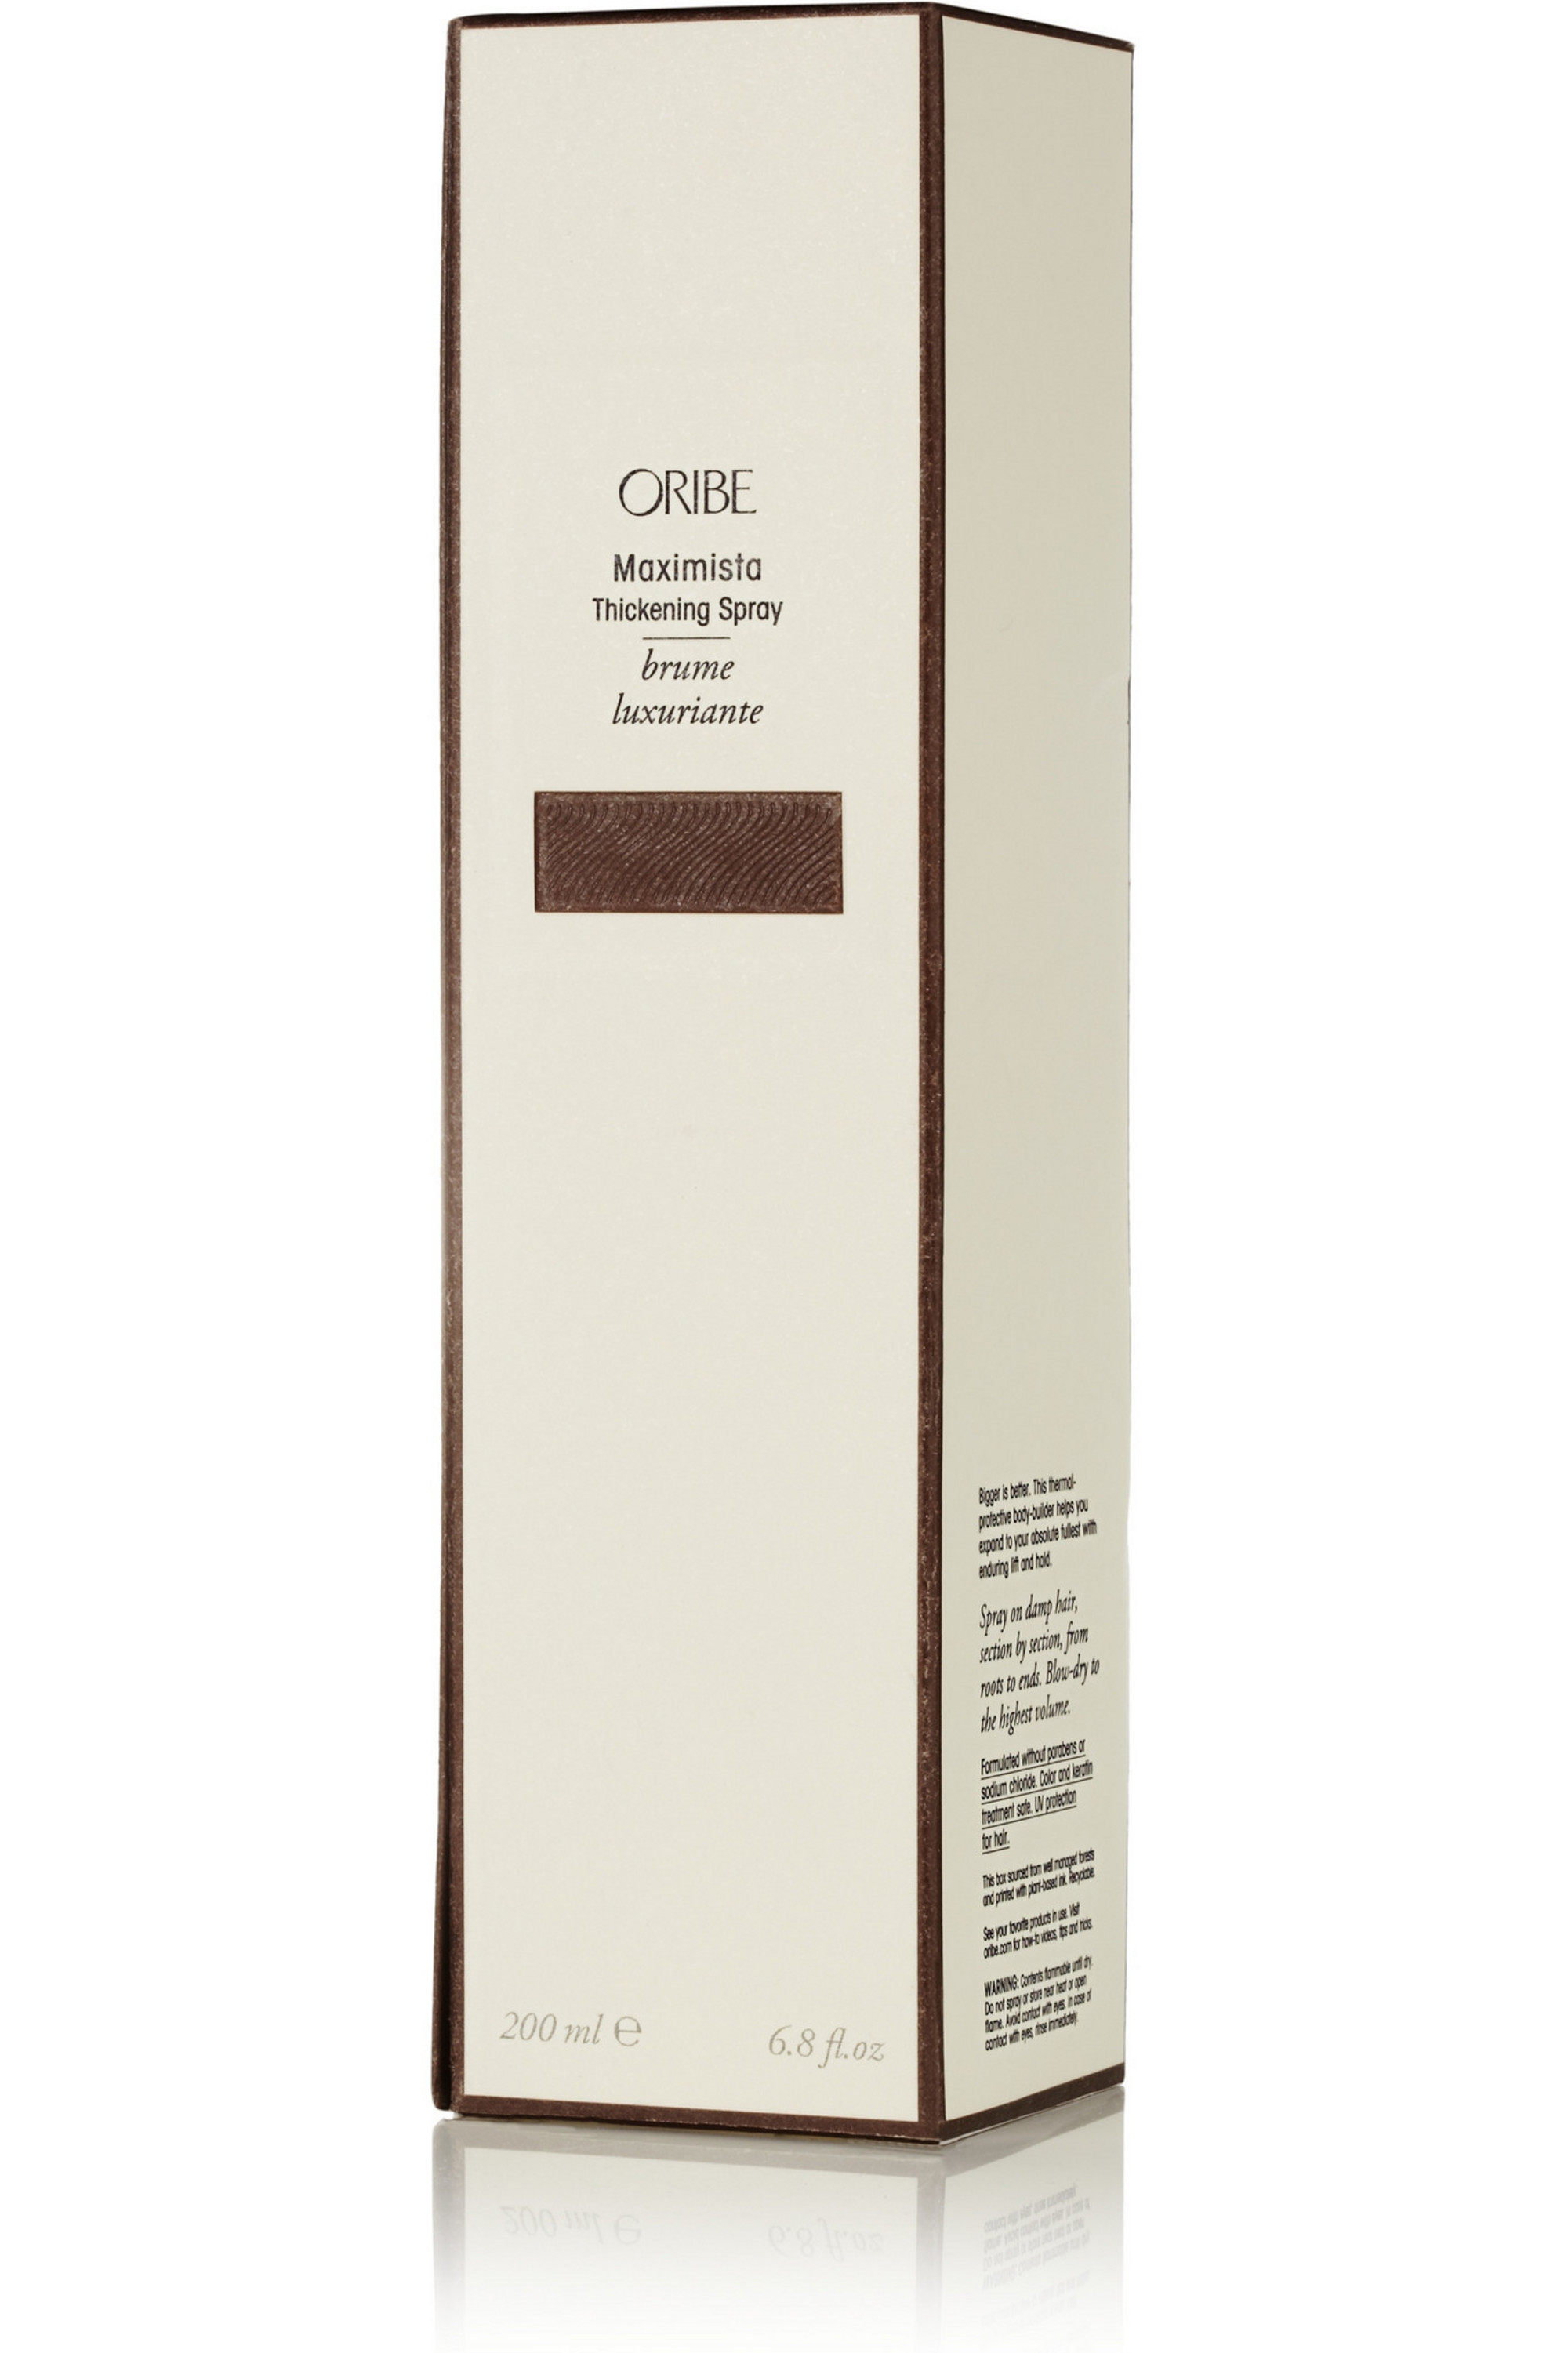 Oribe Maximista Thickening Spray, 200ml – Volumenspray